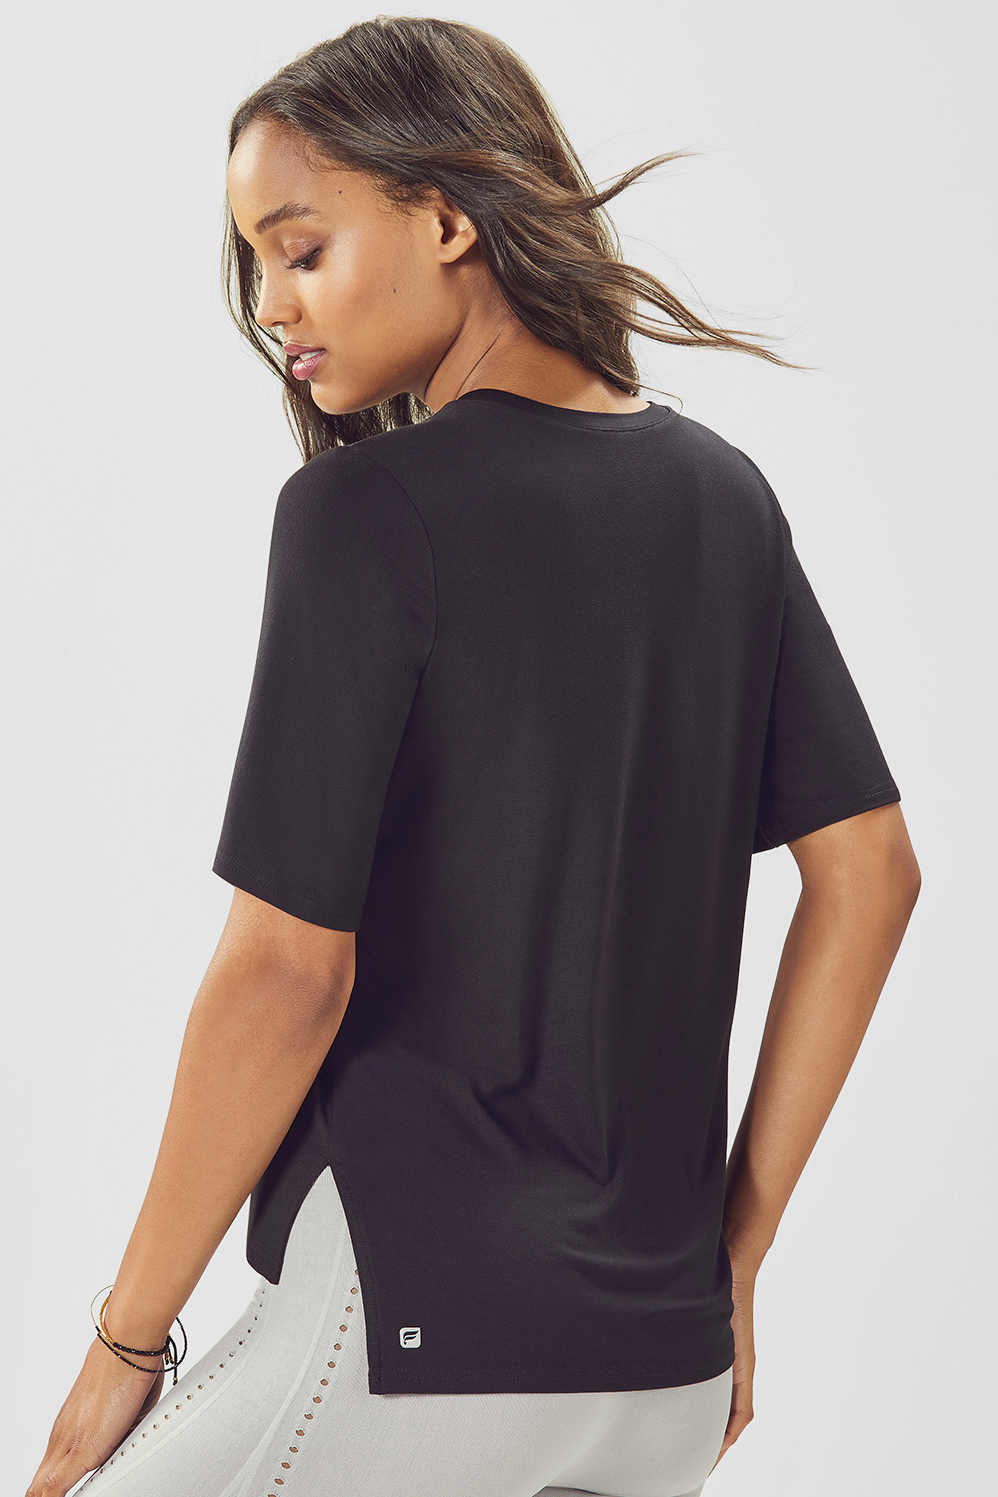 Fabletics T Shirt Bronte S/S Womens Black Size S Retire your basic tee and make room for a new model, designed with flirty flutter sleeves, side slits and a flattering step hem. Soft, Draped Jersey, Flutter Sleeves, Side Slit With Step Hem, Built-In Bra. N, Length. Below Hip, Fabric Content. 95% Rayon/5% Elastane, Fit. Relaxed